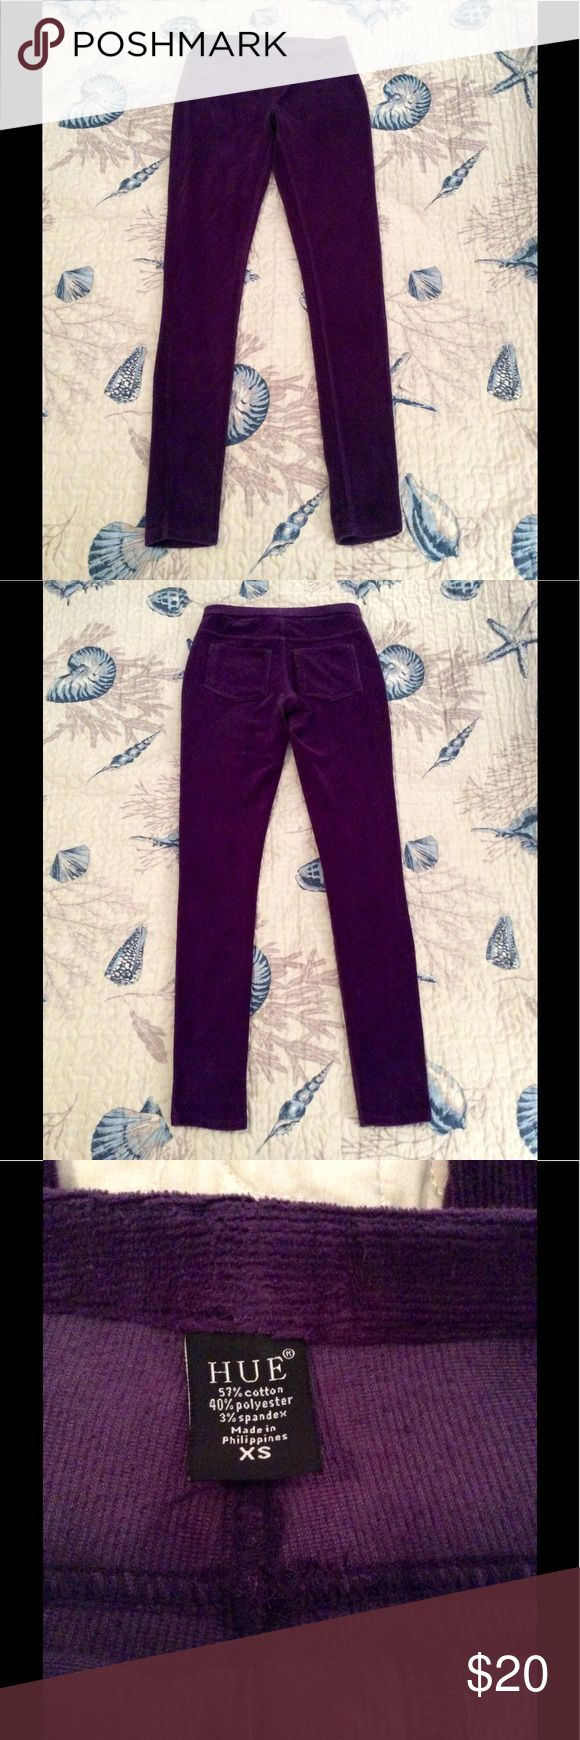 "EUC Hue Corduroy Purple Leggings Excellent condition - no marks, rips, holes, piling, etc. Faux front pockets, real back pockets. Measures 36 inches long, 13"" waist, 7"" inseam. No trades. Comes from smoke & pet free home. Don't hesitate to ask any questions! HUE Pants Leggings"